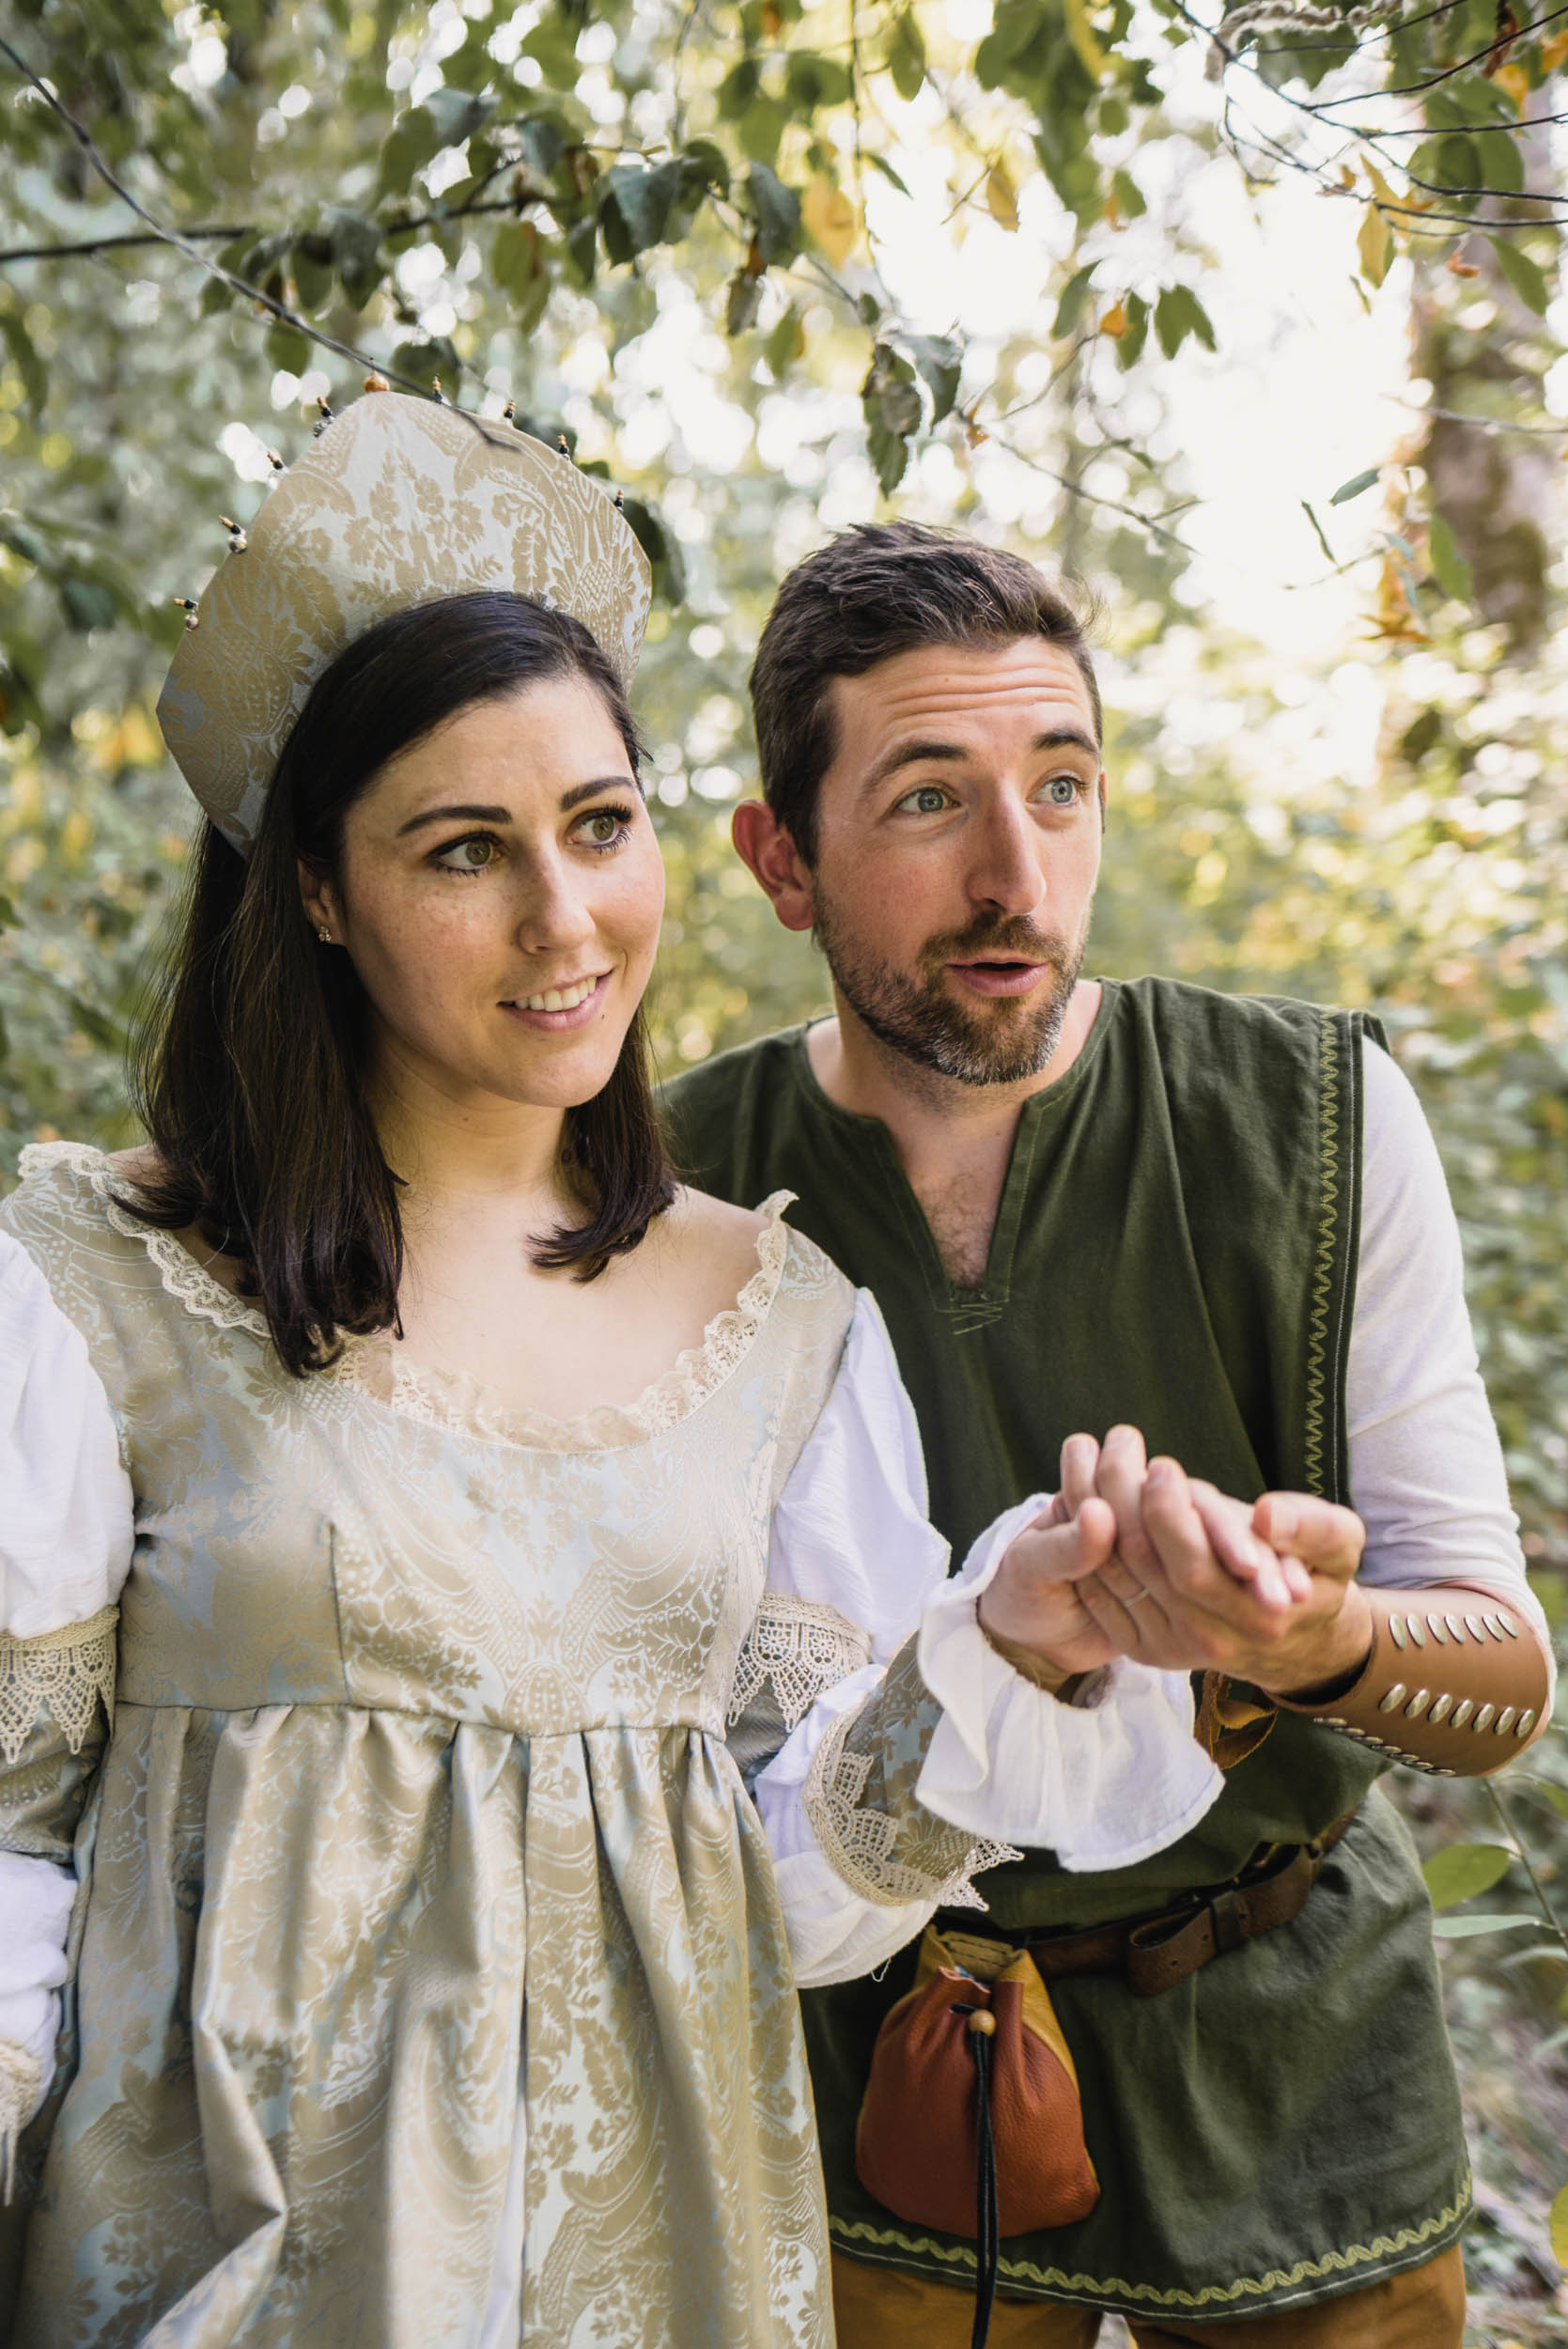 Couple with medieval costumes in forest